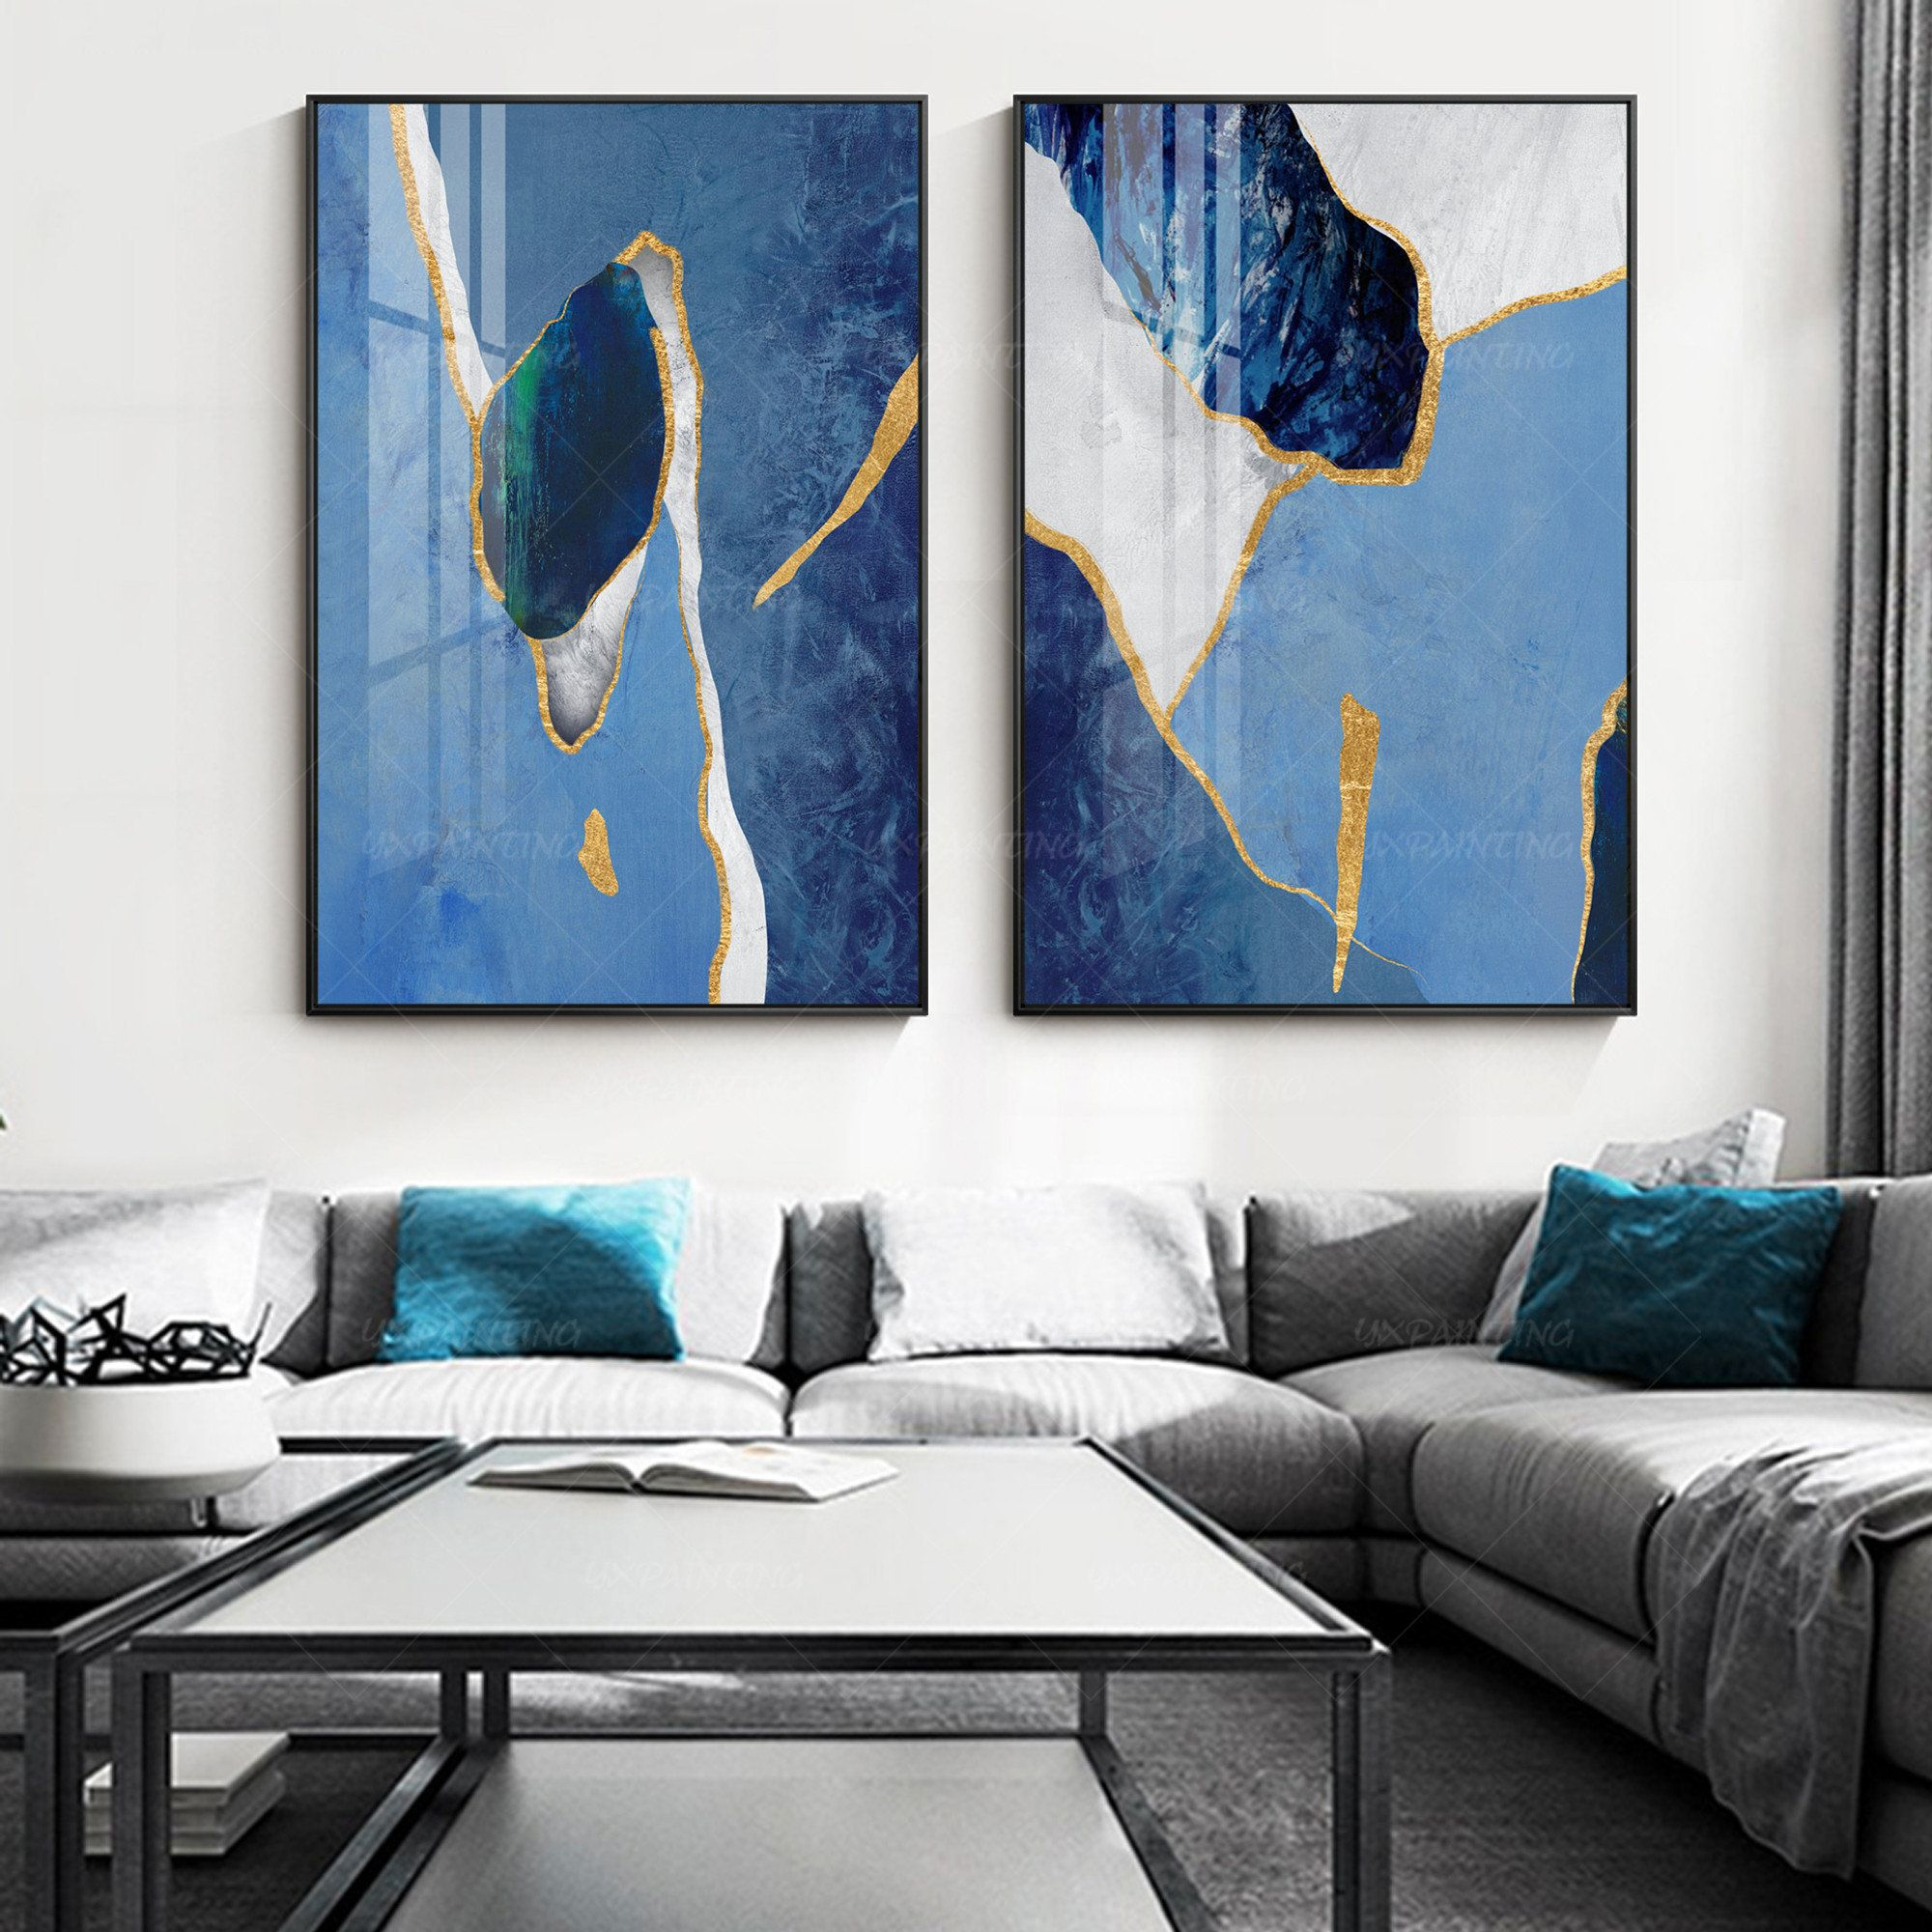 Gold Art 2 Pieces Wall Art Framed Painting Set Of 2 Wall Art Etsy In 2021 Framed Wall Art Sets Painting Frames Framed Wall Art